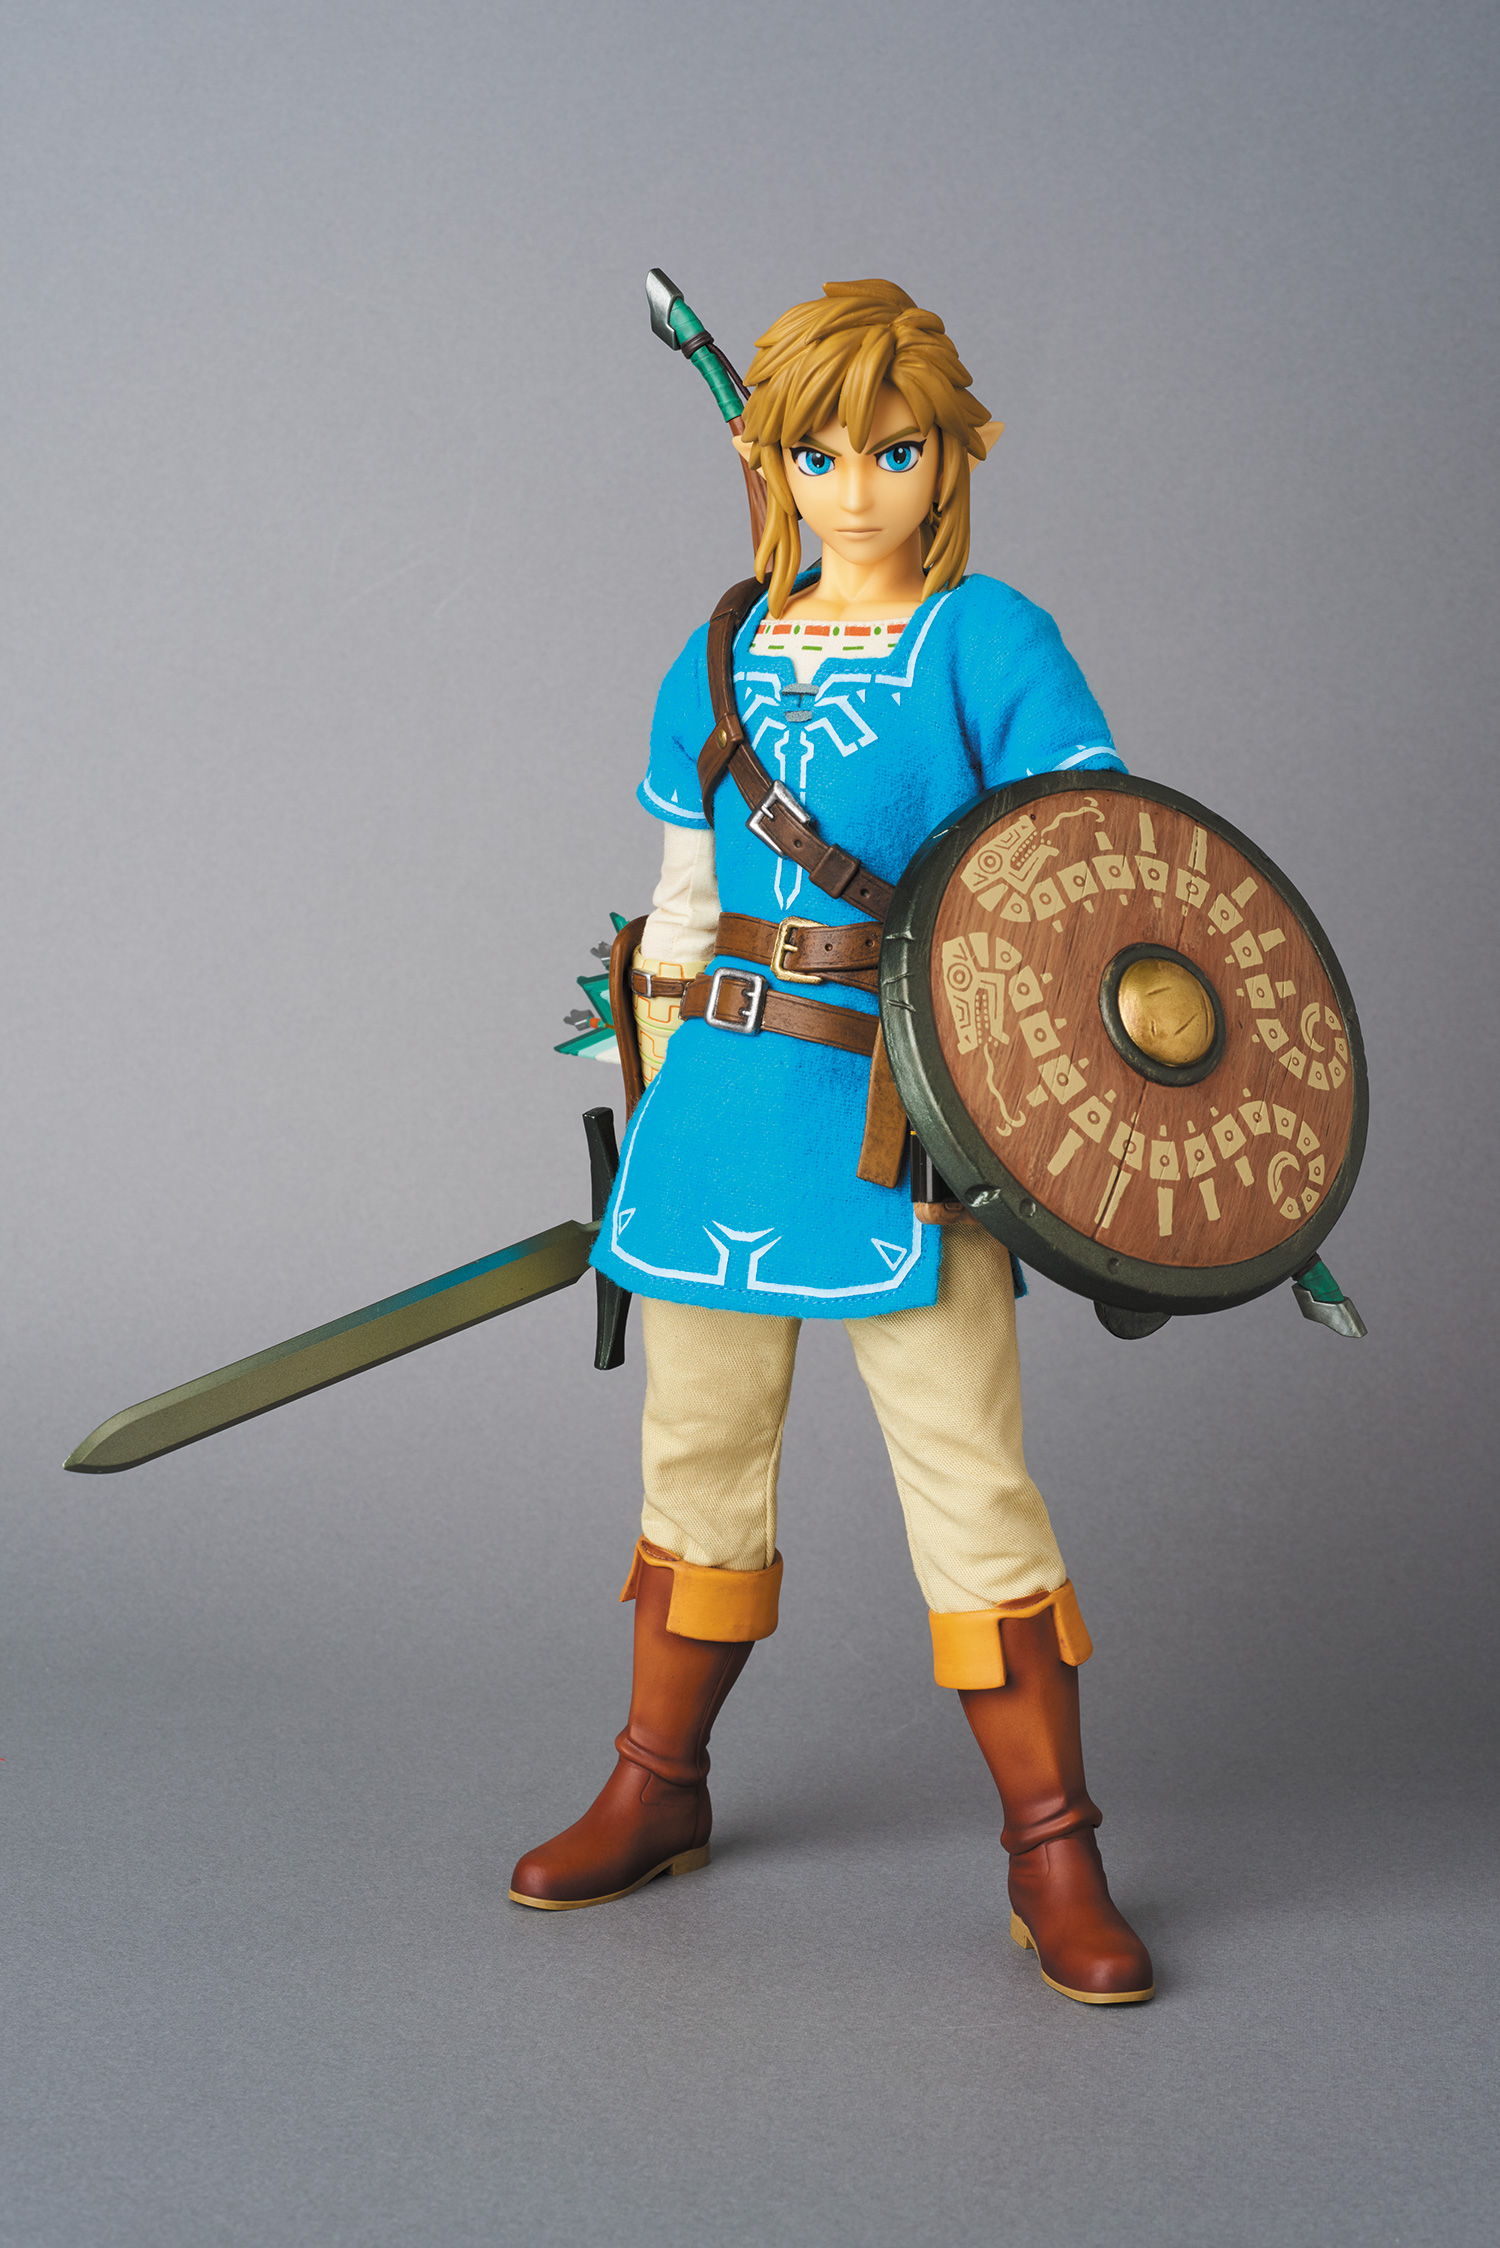 New photos of the Zelda: Breath of the Wild Link figure from Medicom